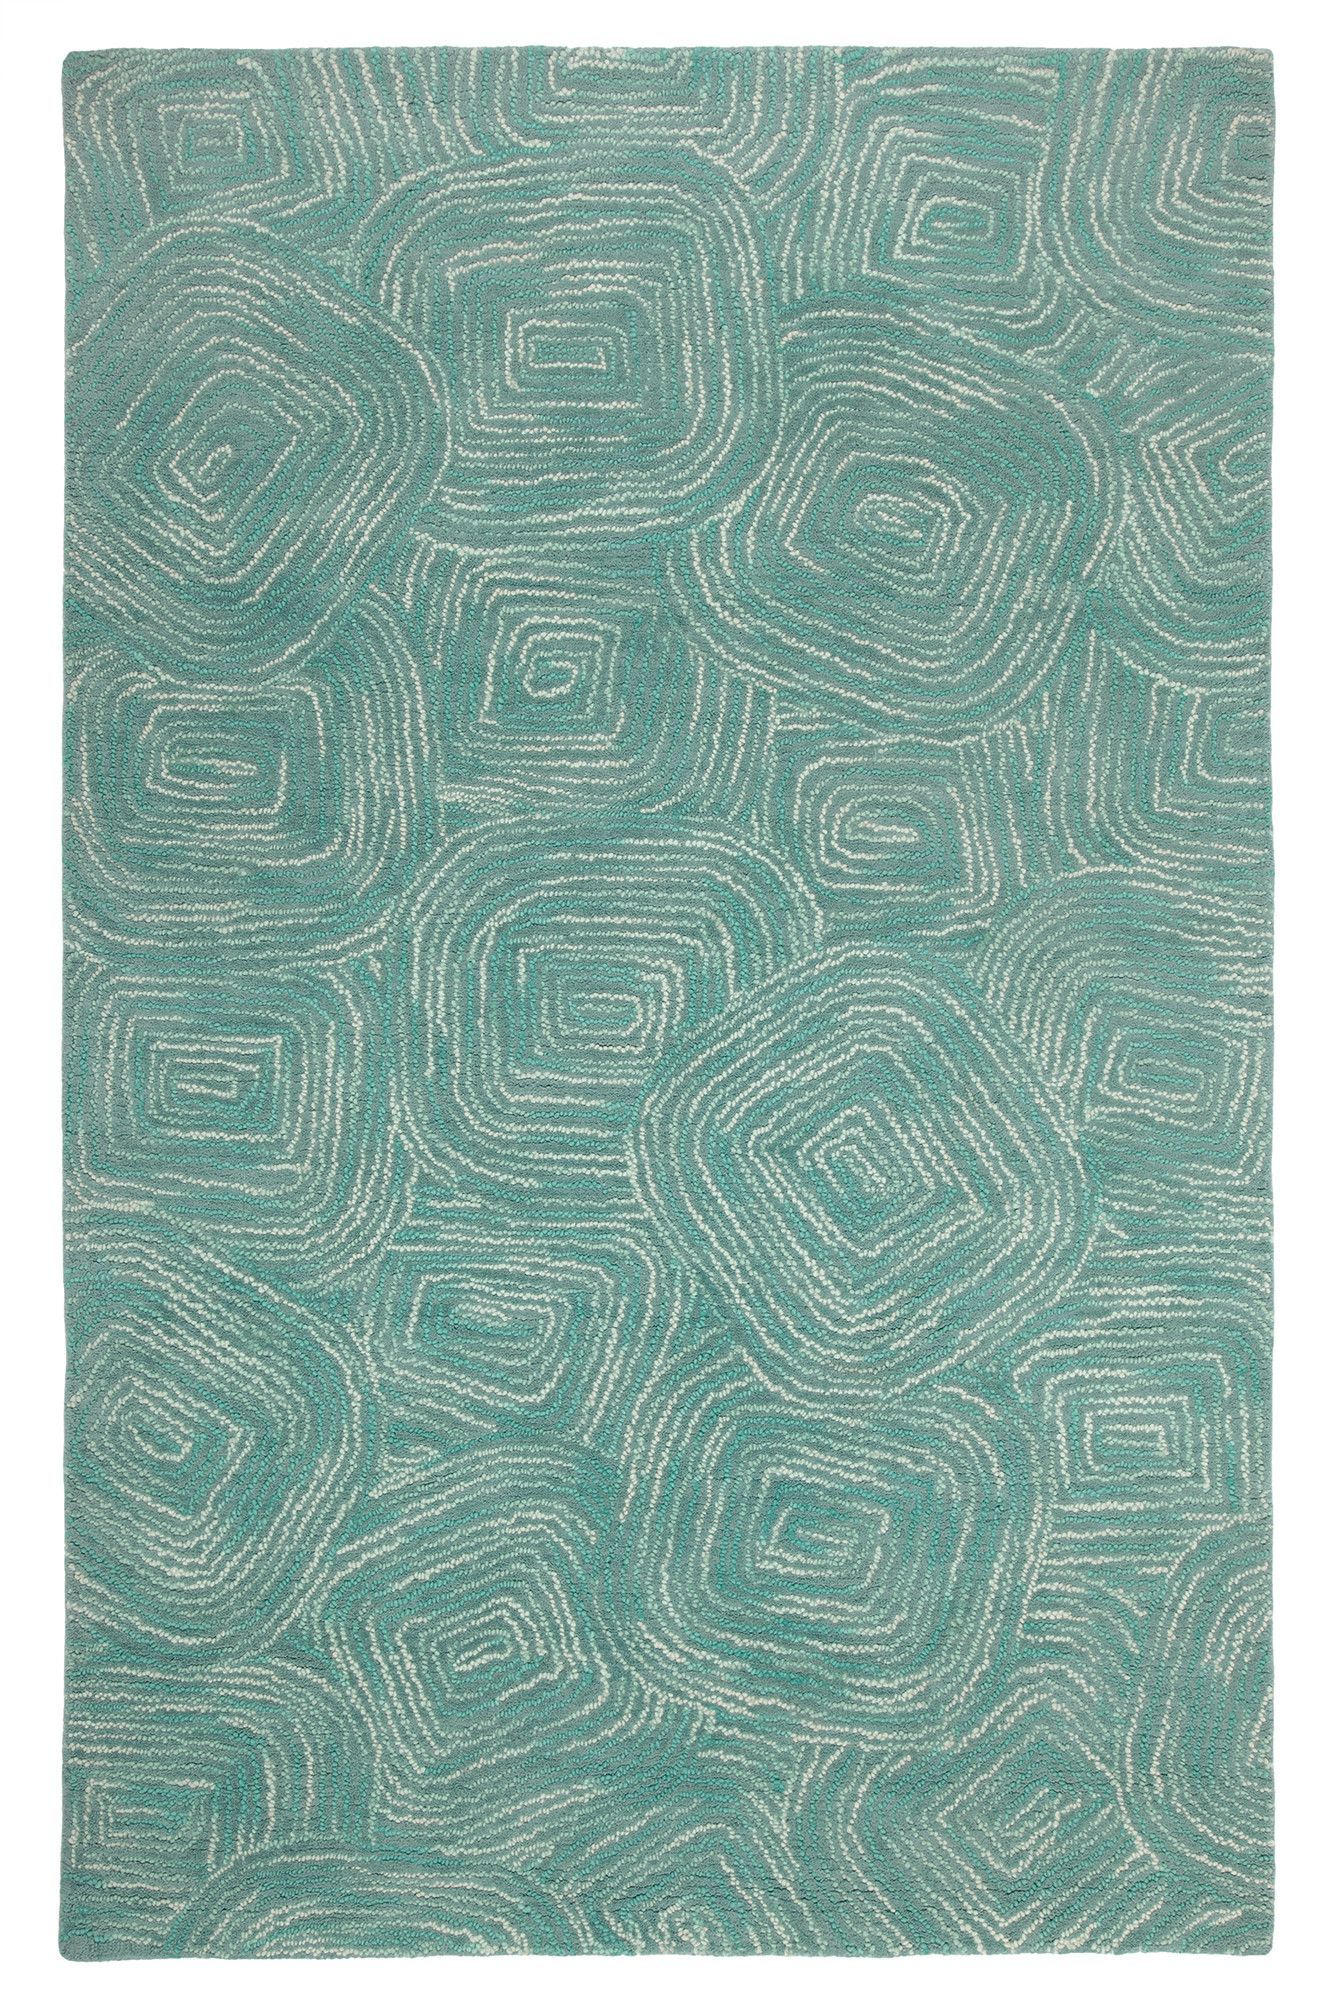 Company C Under The Sea Rug By Company C Sea Rug Colorful Rugs